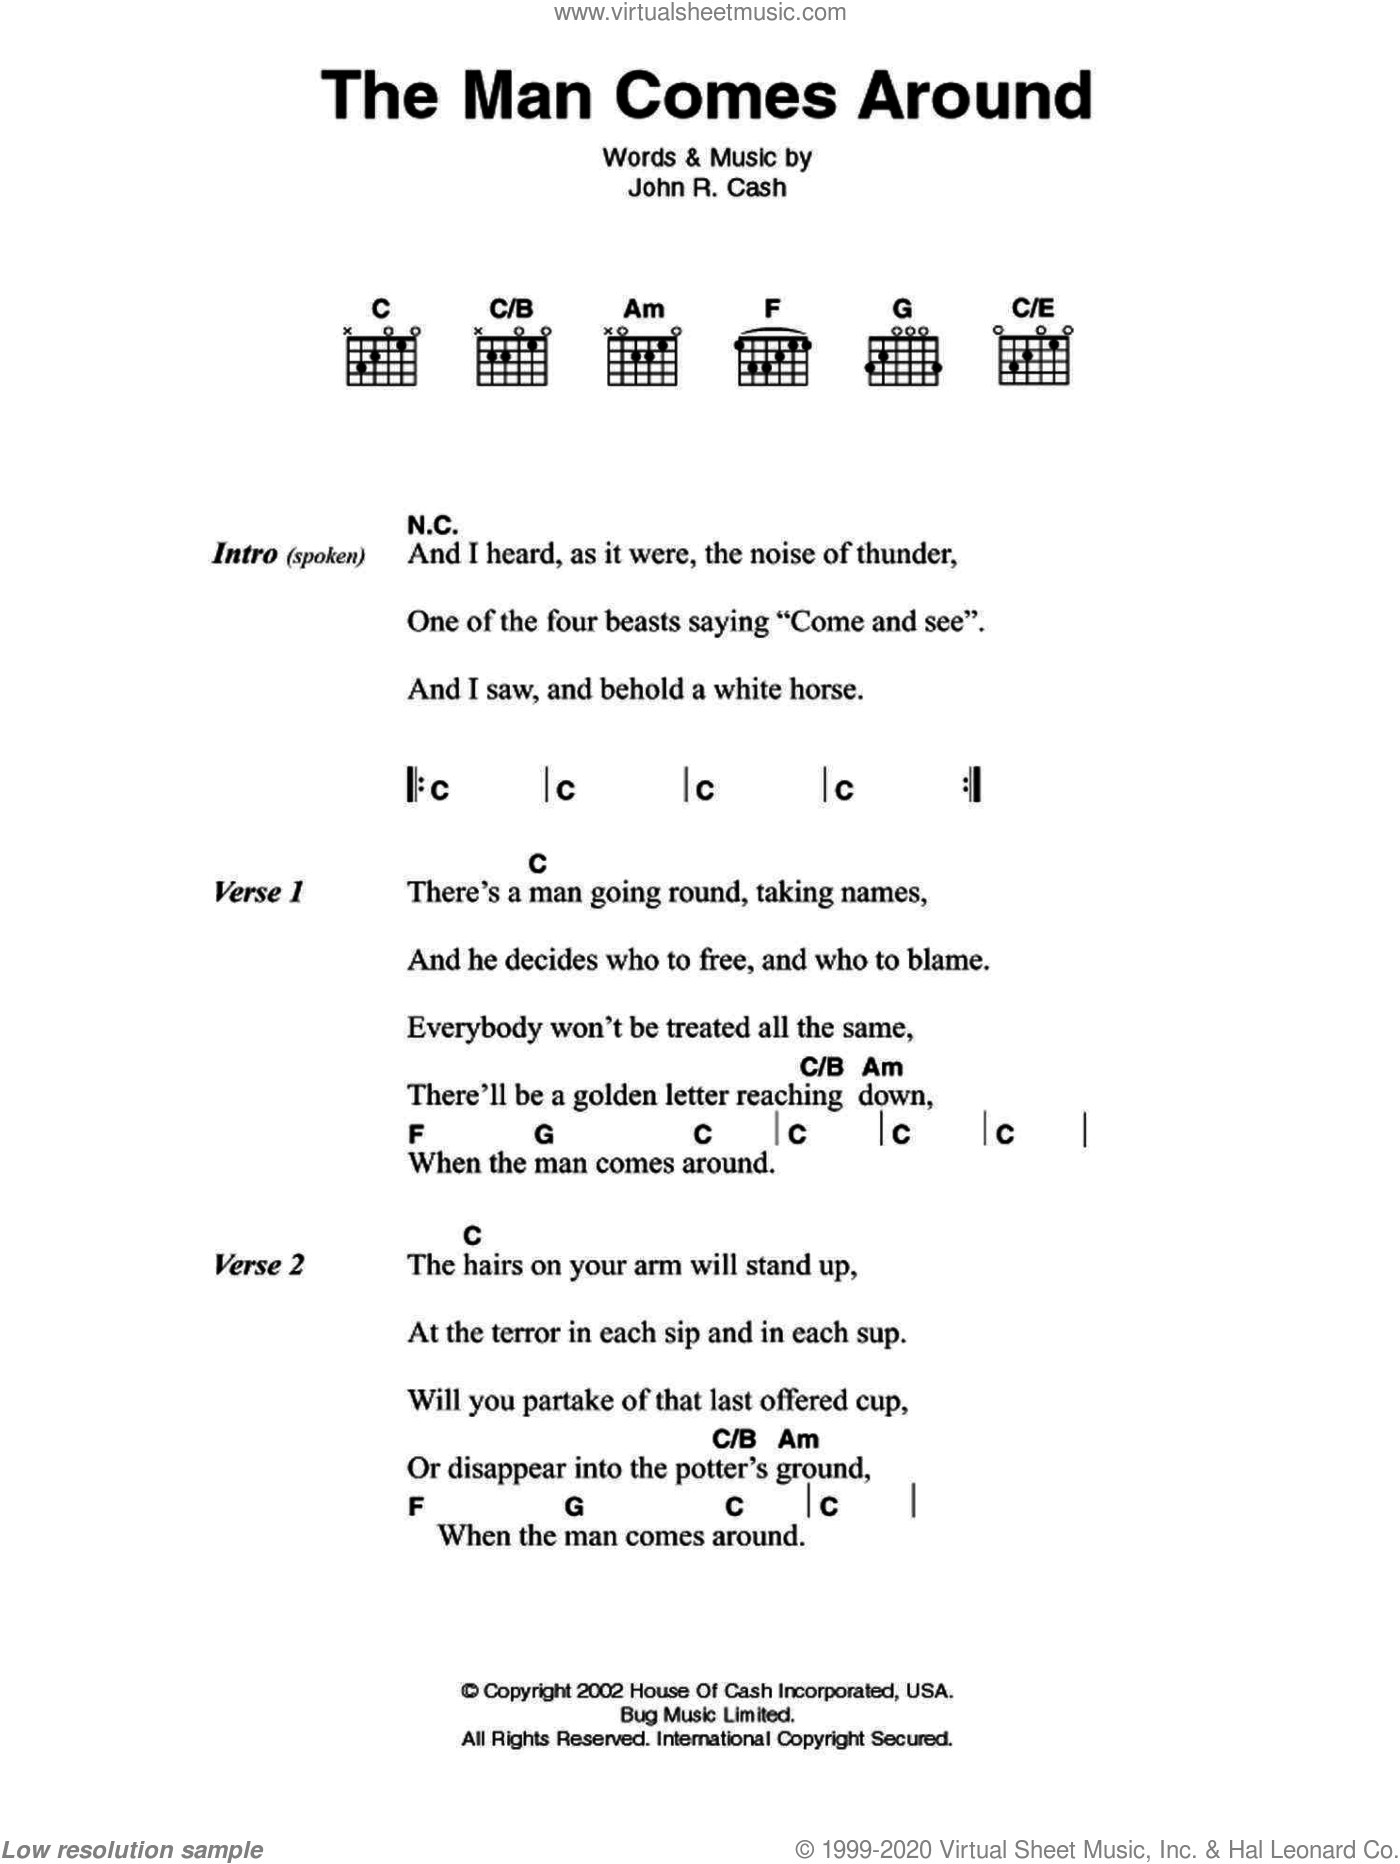 The Man Comes Around sheet music for guitar (chords) by Johnny Cash, intermediate skill level